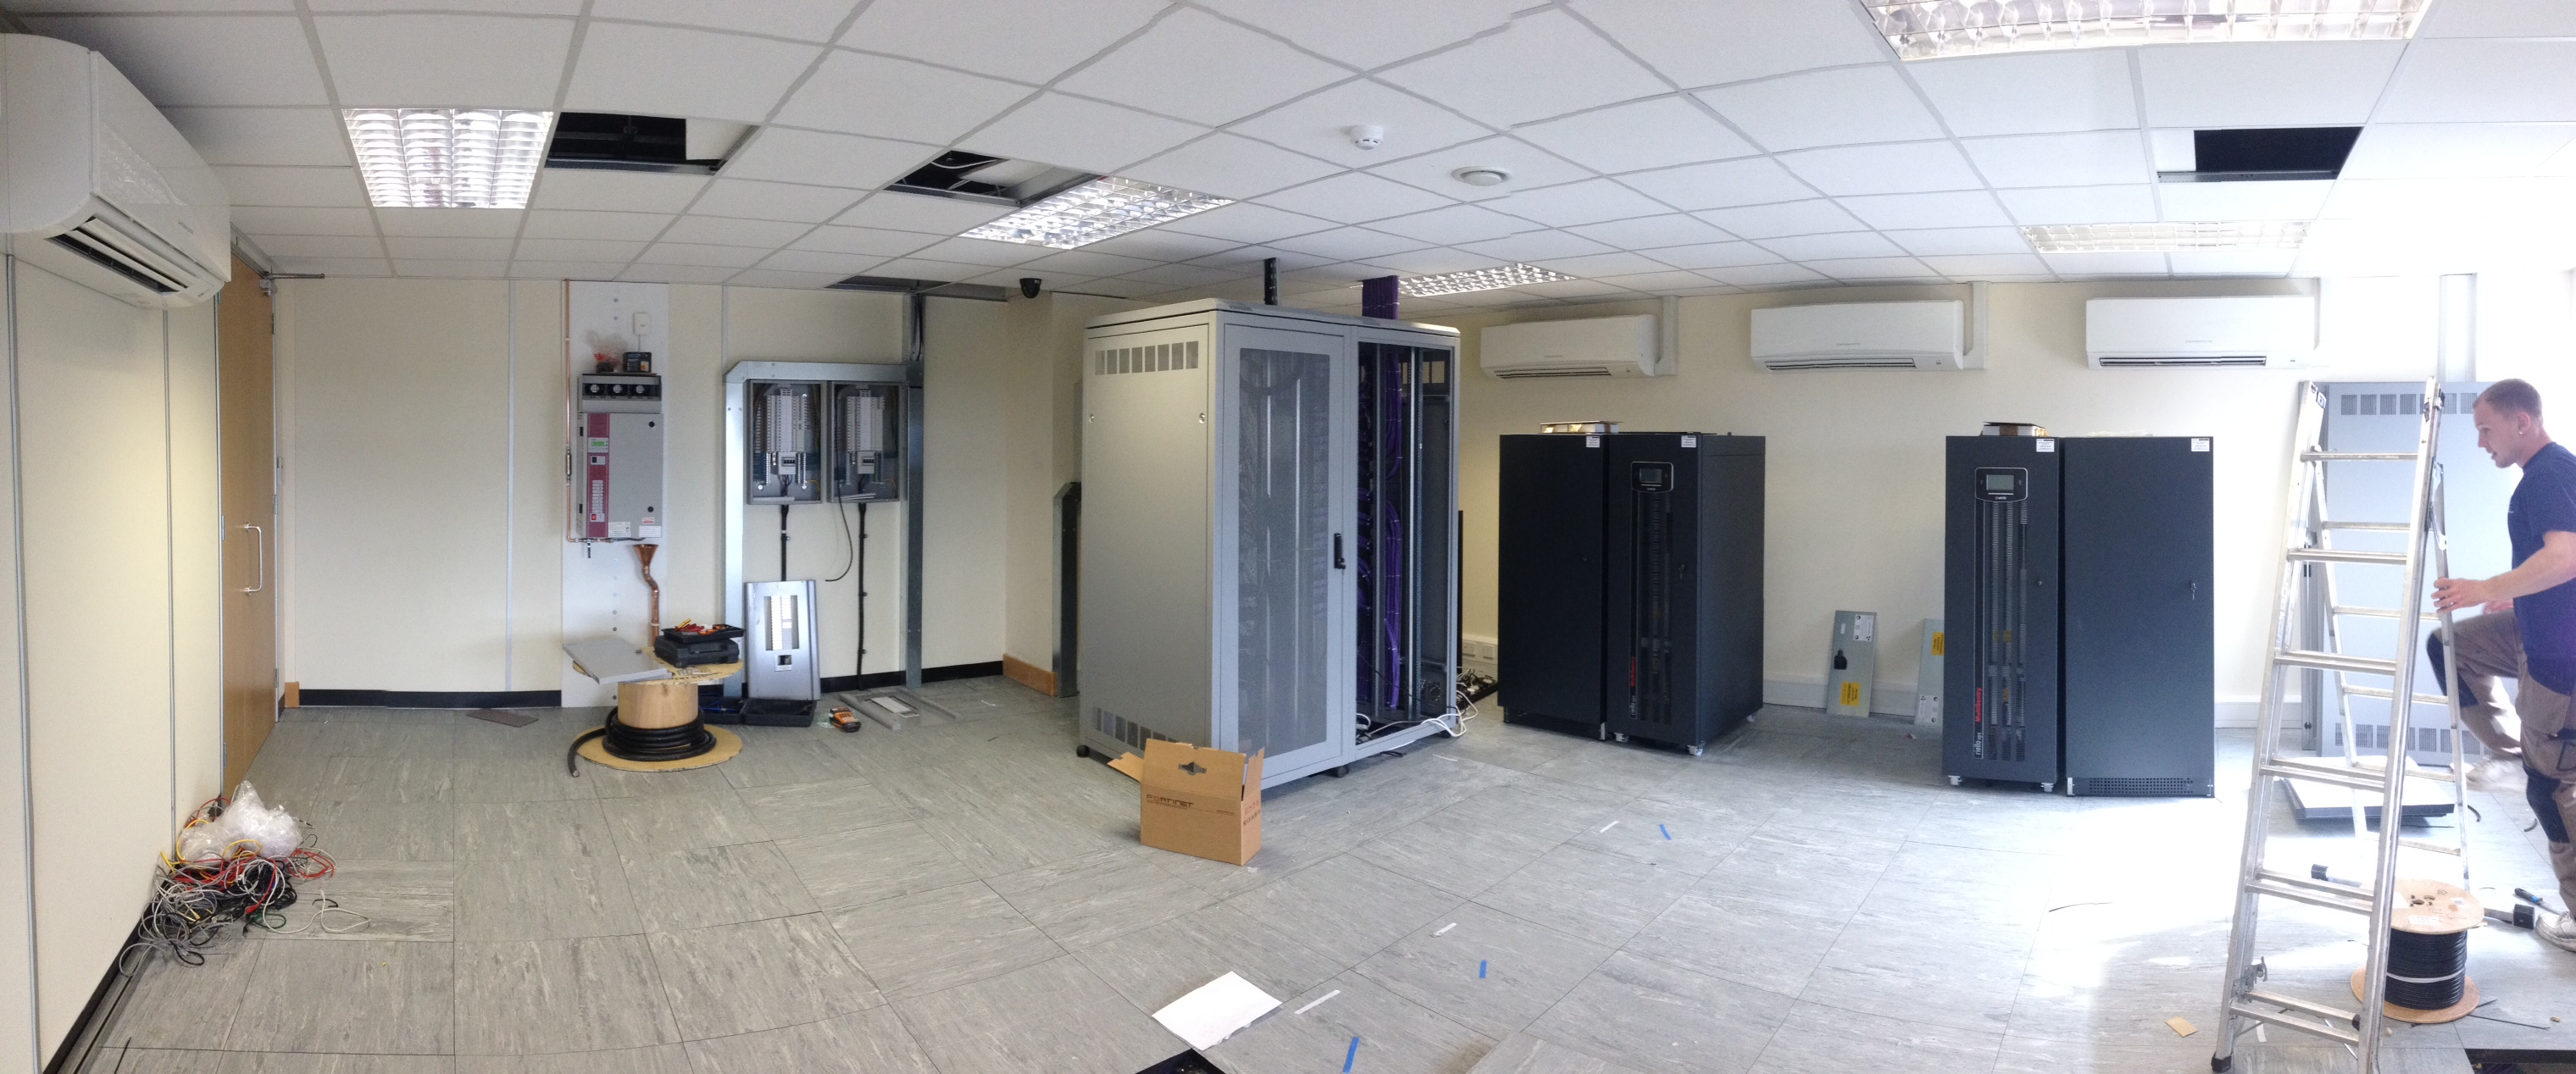 Hvac Room Equipment Mail: Server Room Air Conditioning At Saga Healthcare PLC